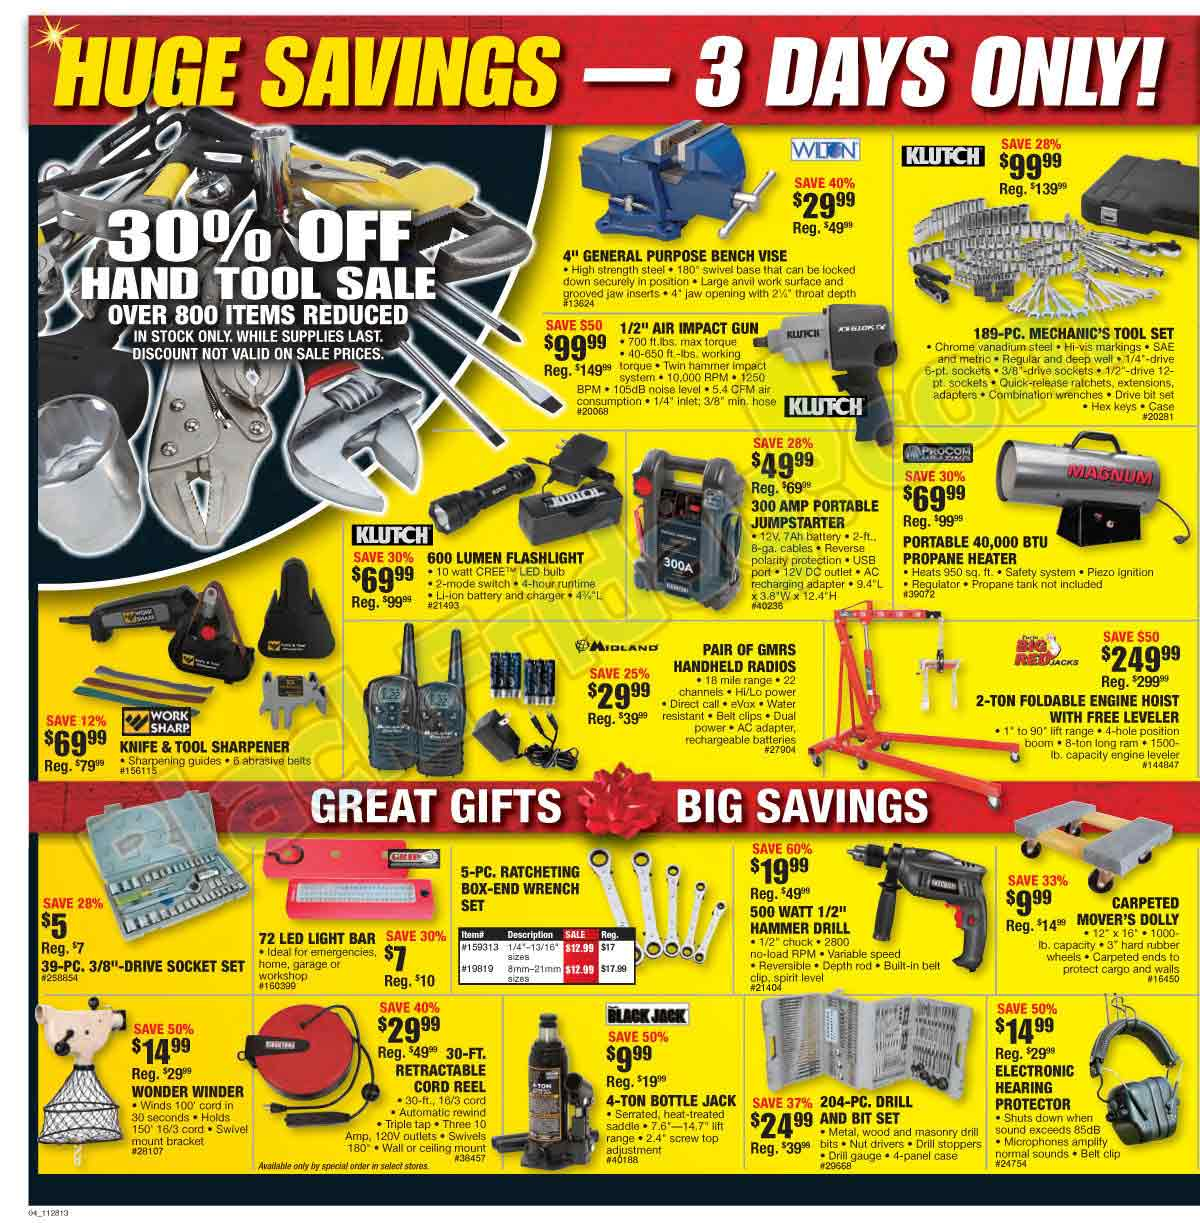 Northern Tool Black Friday 2013 Ad Find the Best Northern Tool Black